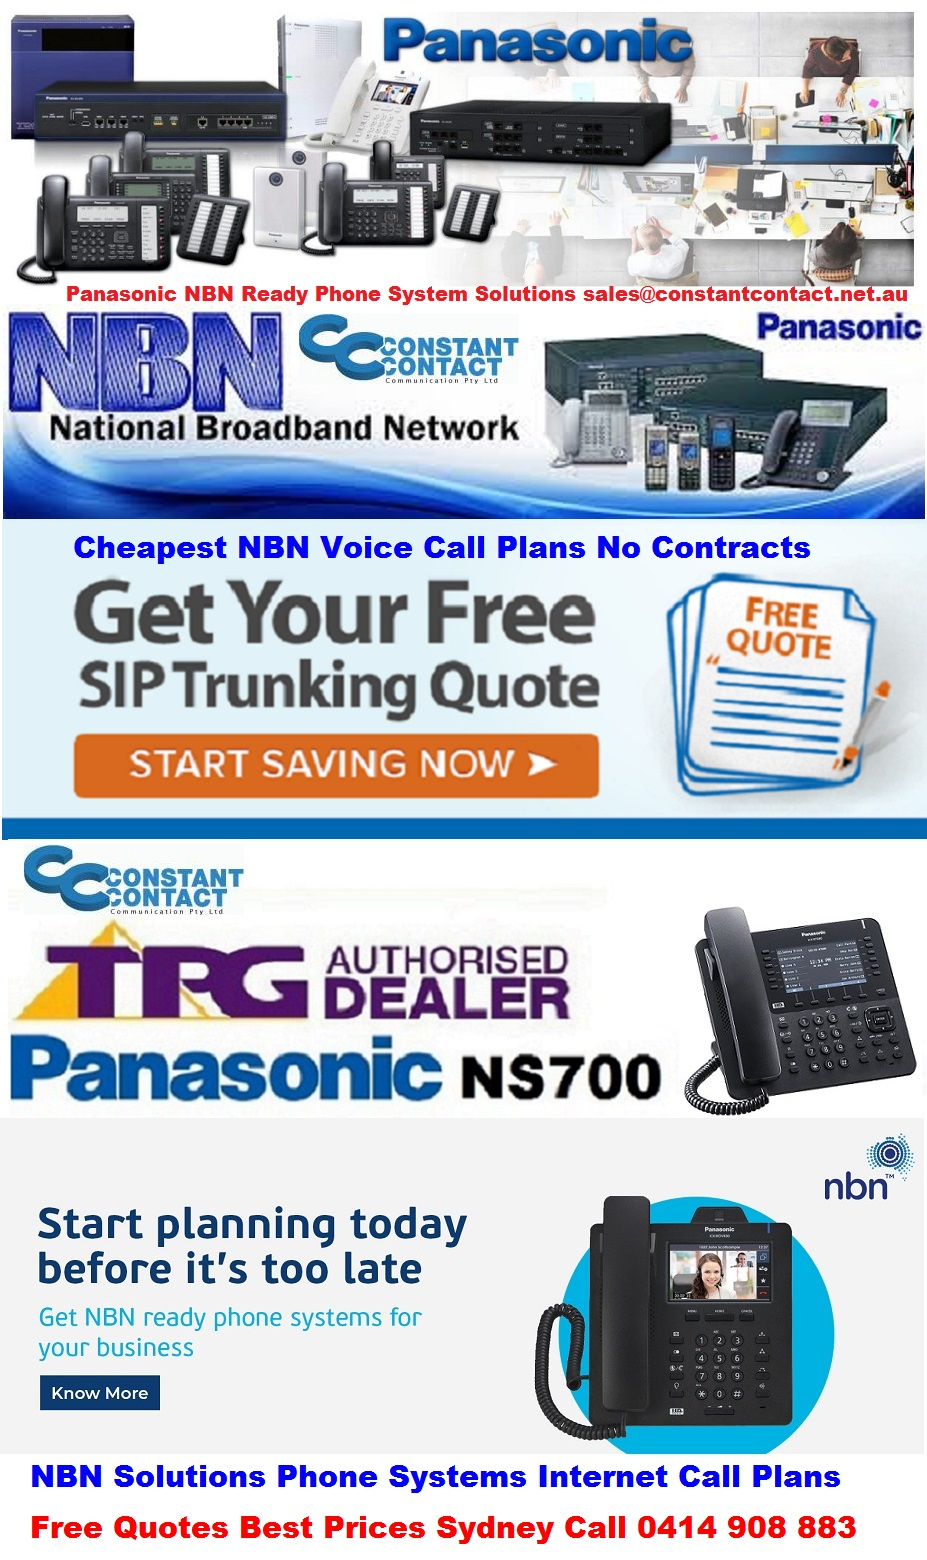 Panasonic nbn phone systems